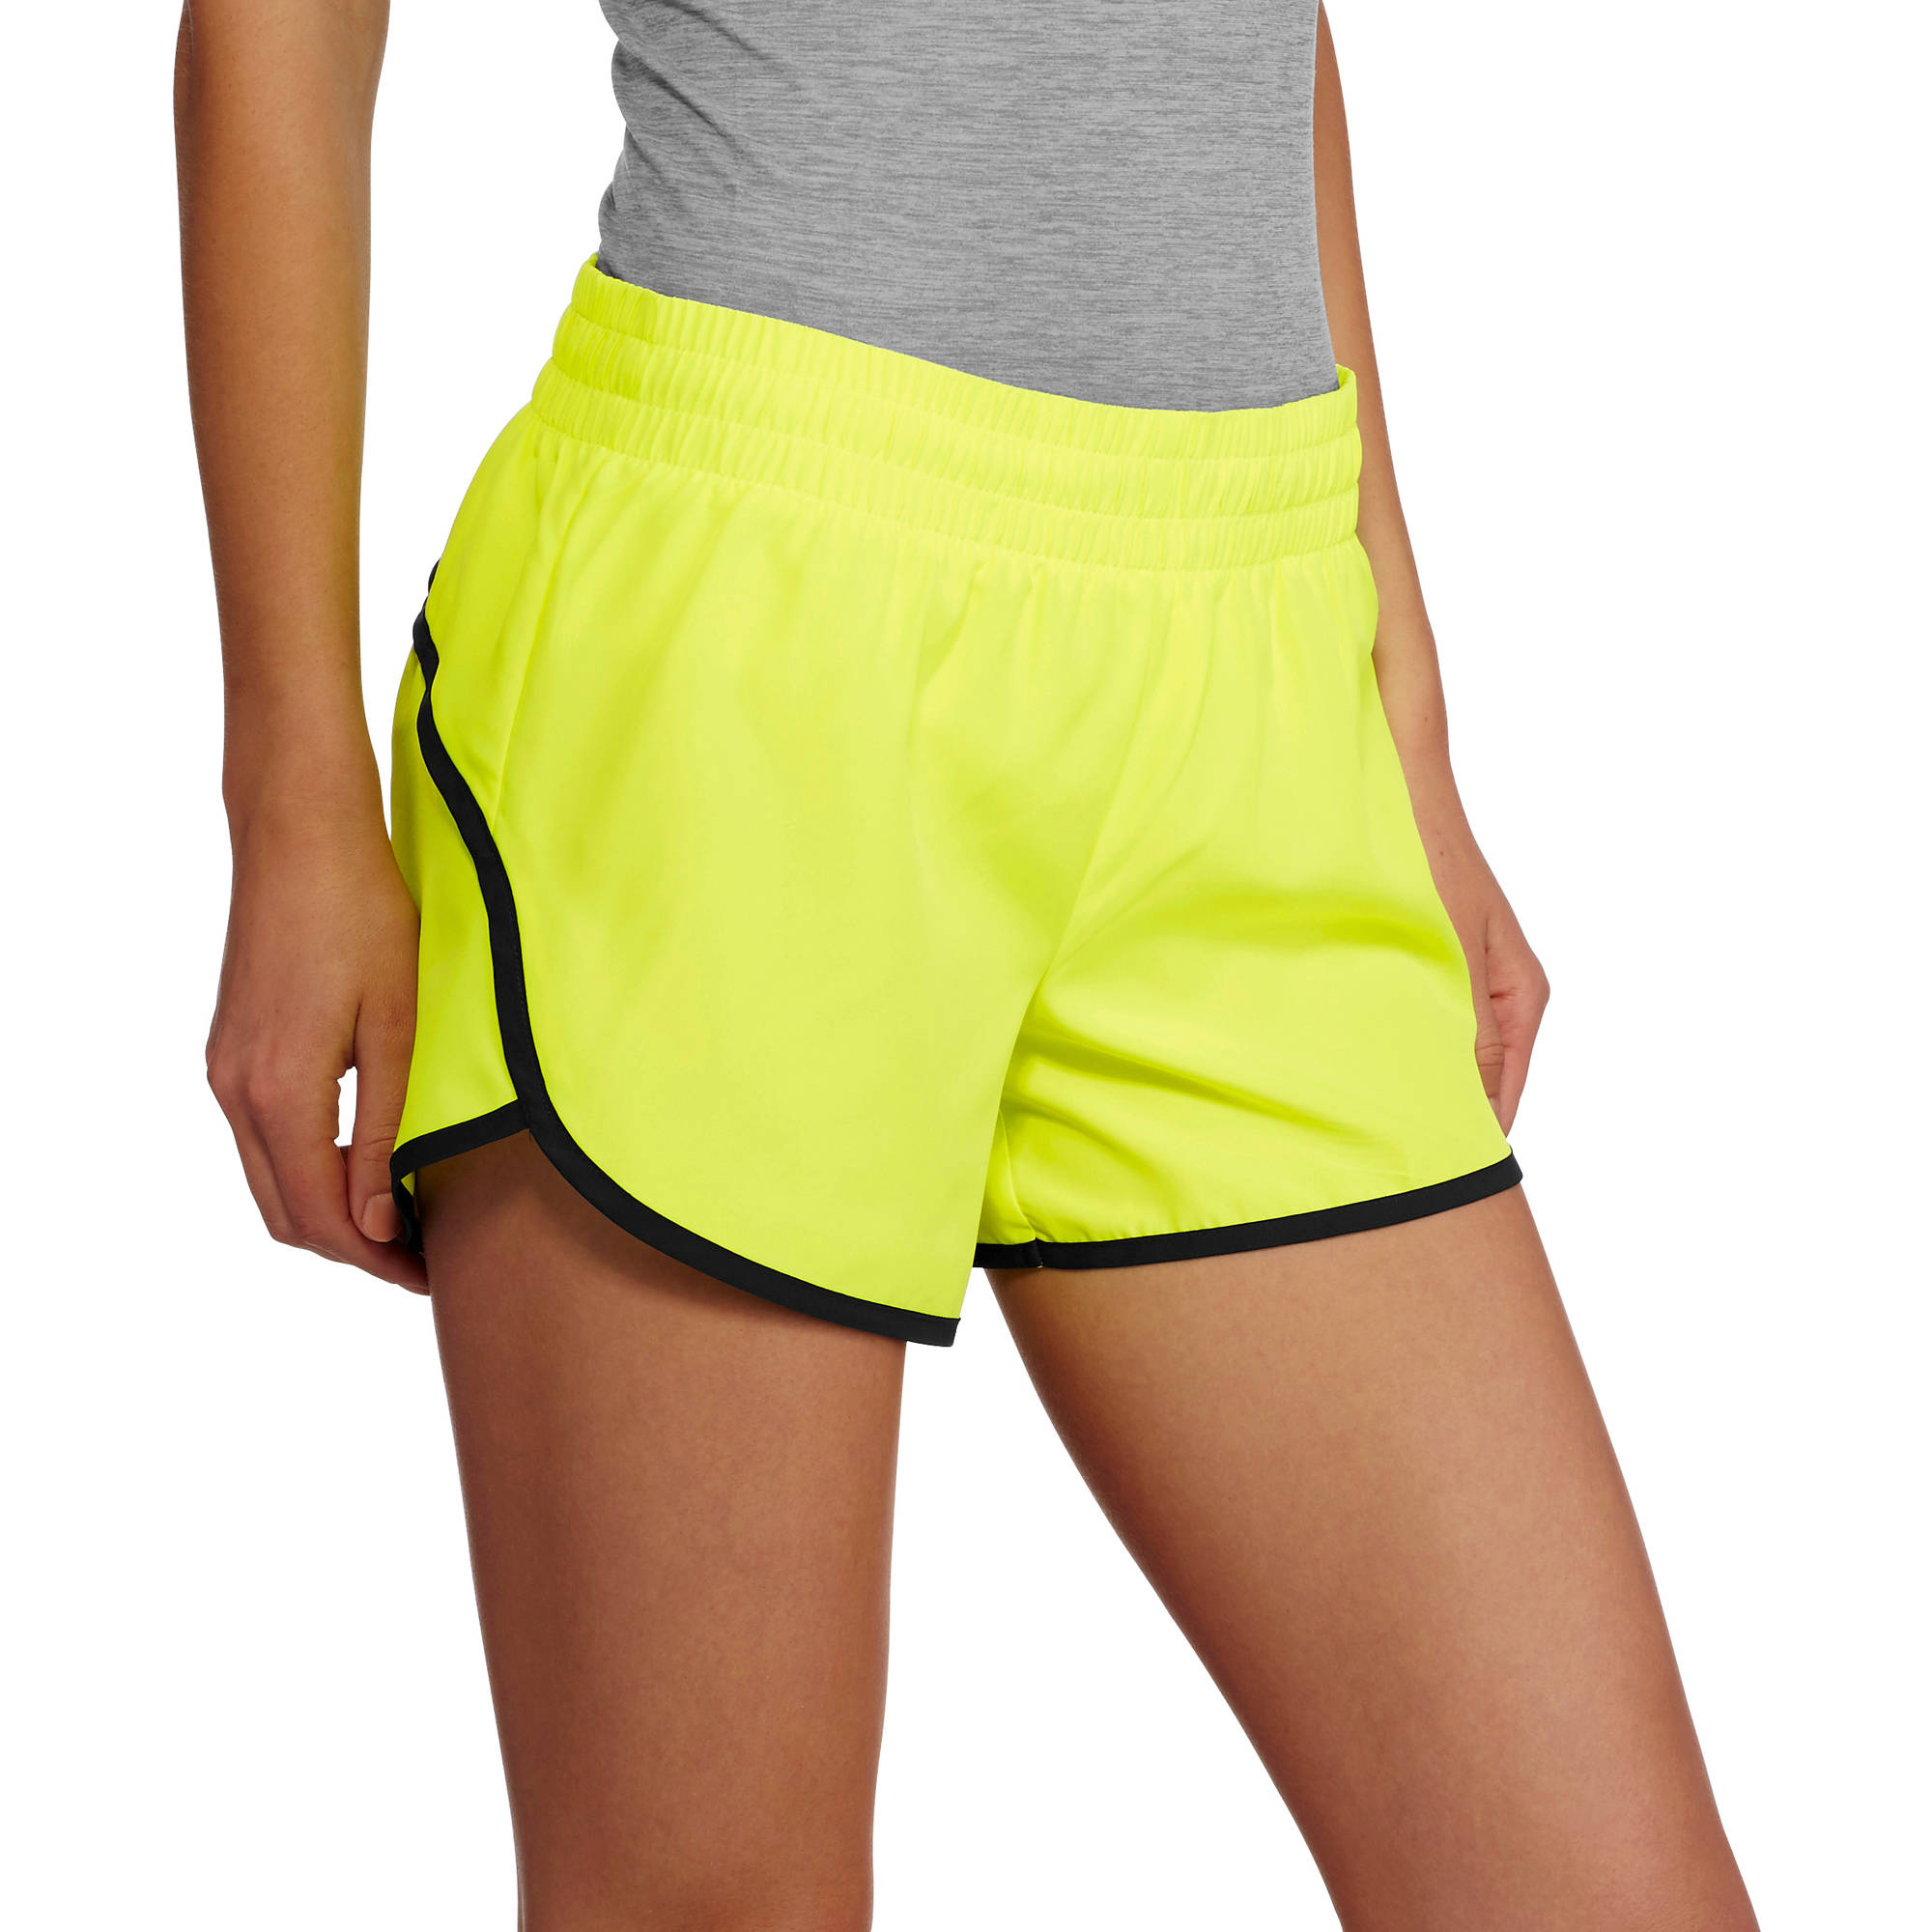 Danskin Now Women's Woven Running Shorts With Built-In Liner